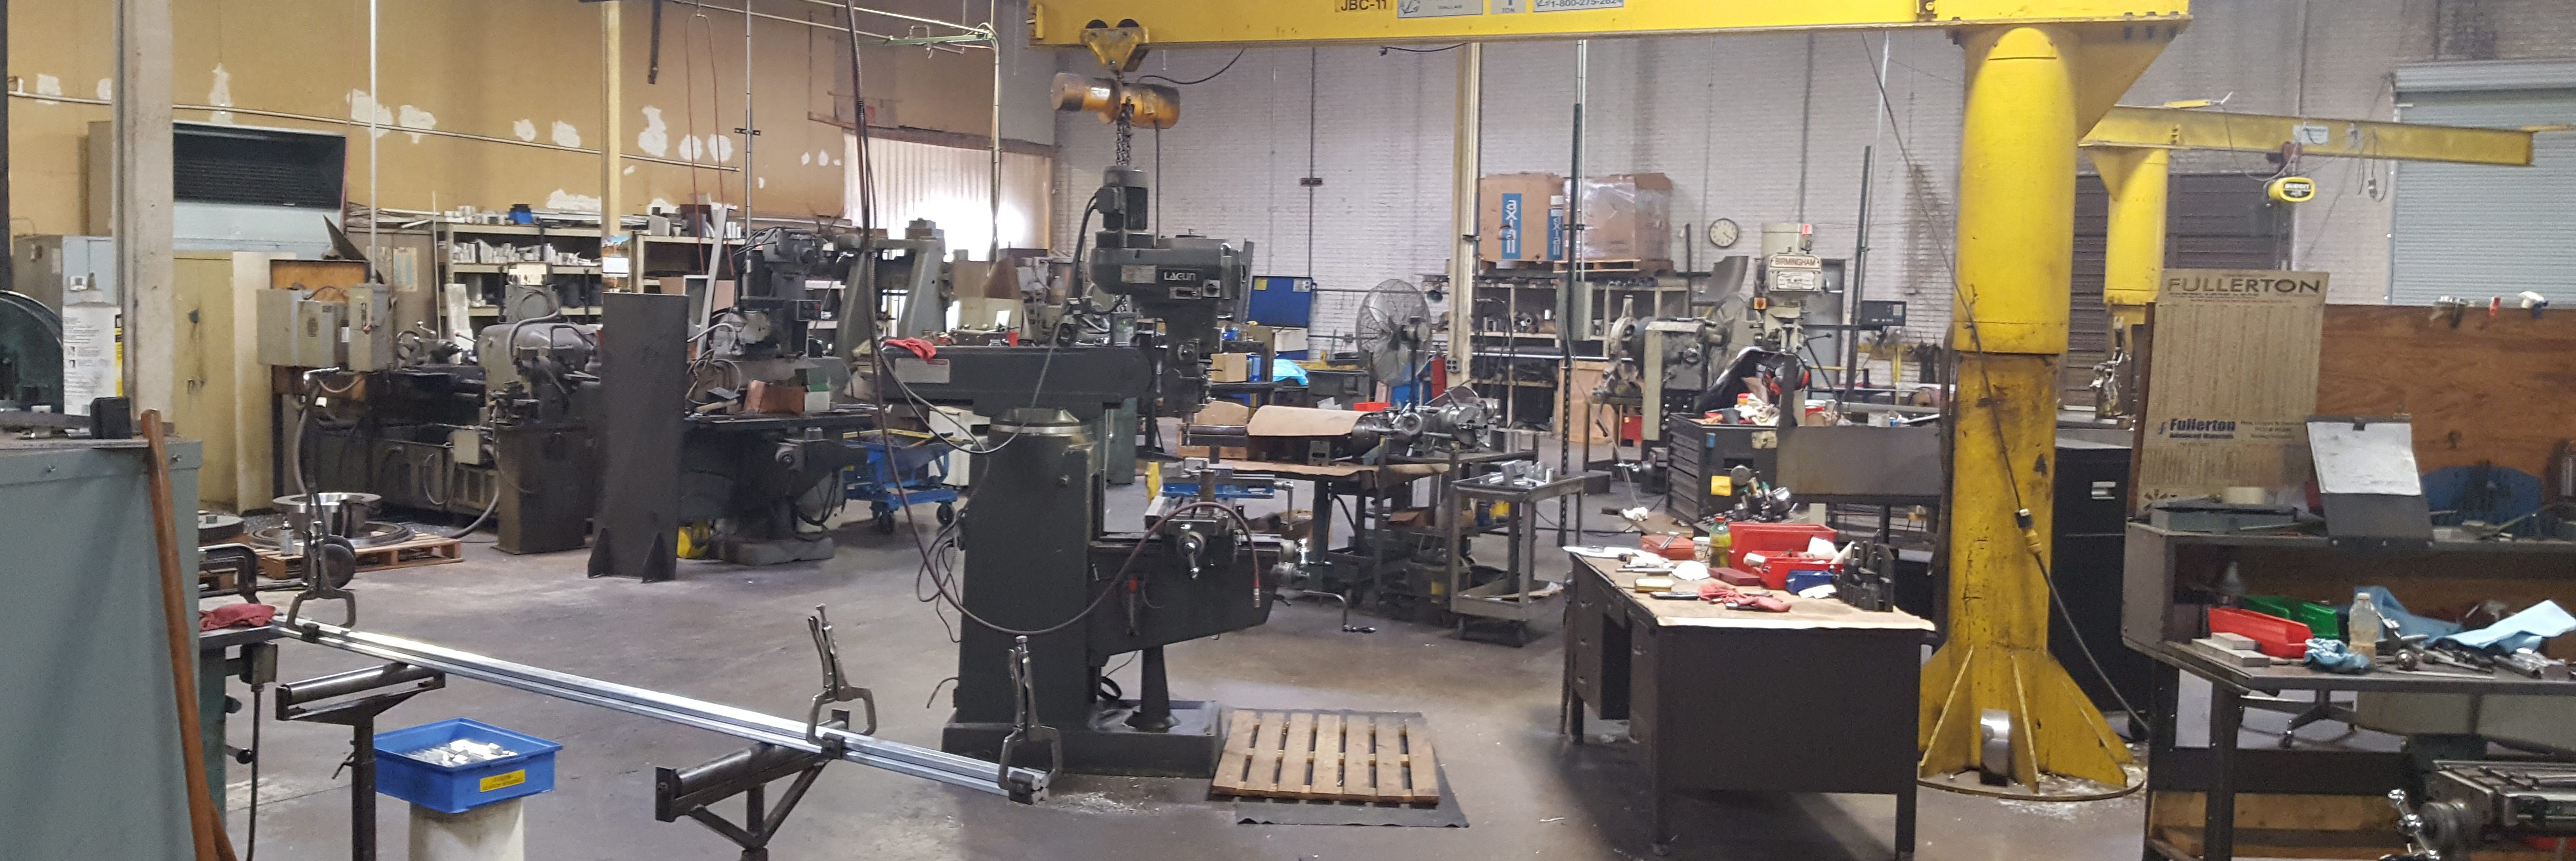 Our CNC & metal machine shop in dallas tx